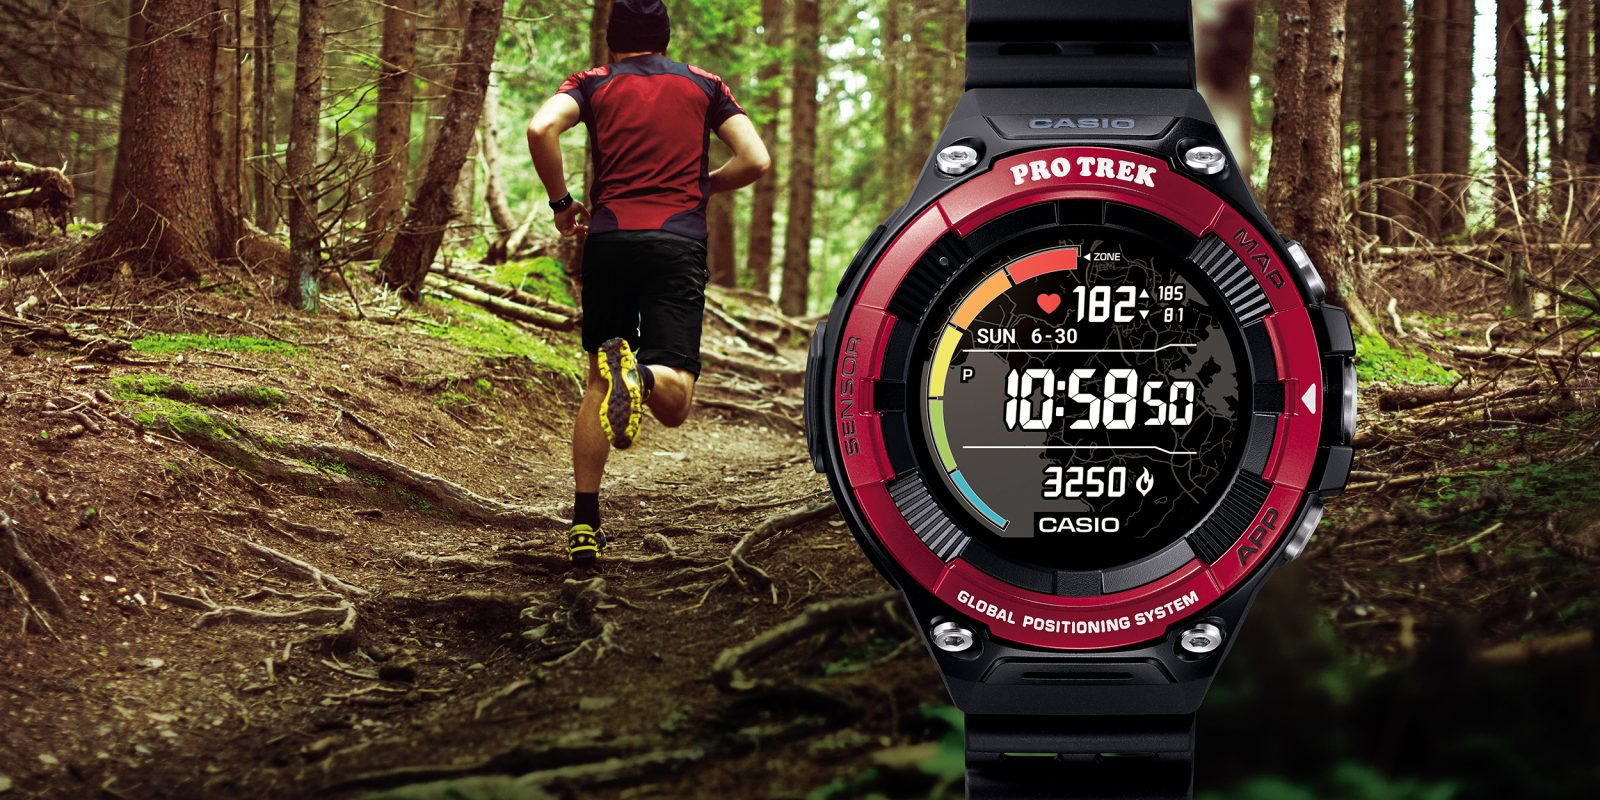 Casio WSD-F21HR finally adds a heart rate monitor - 9to5Google